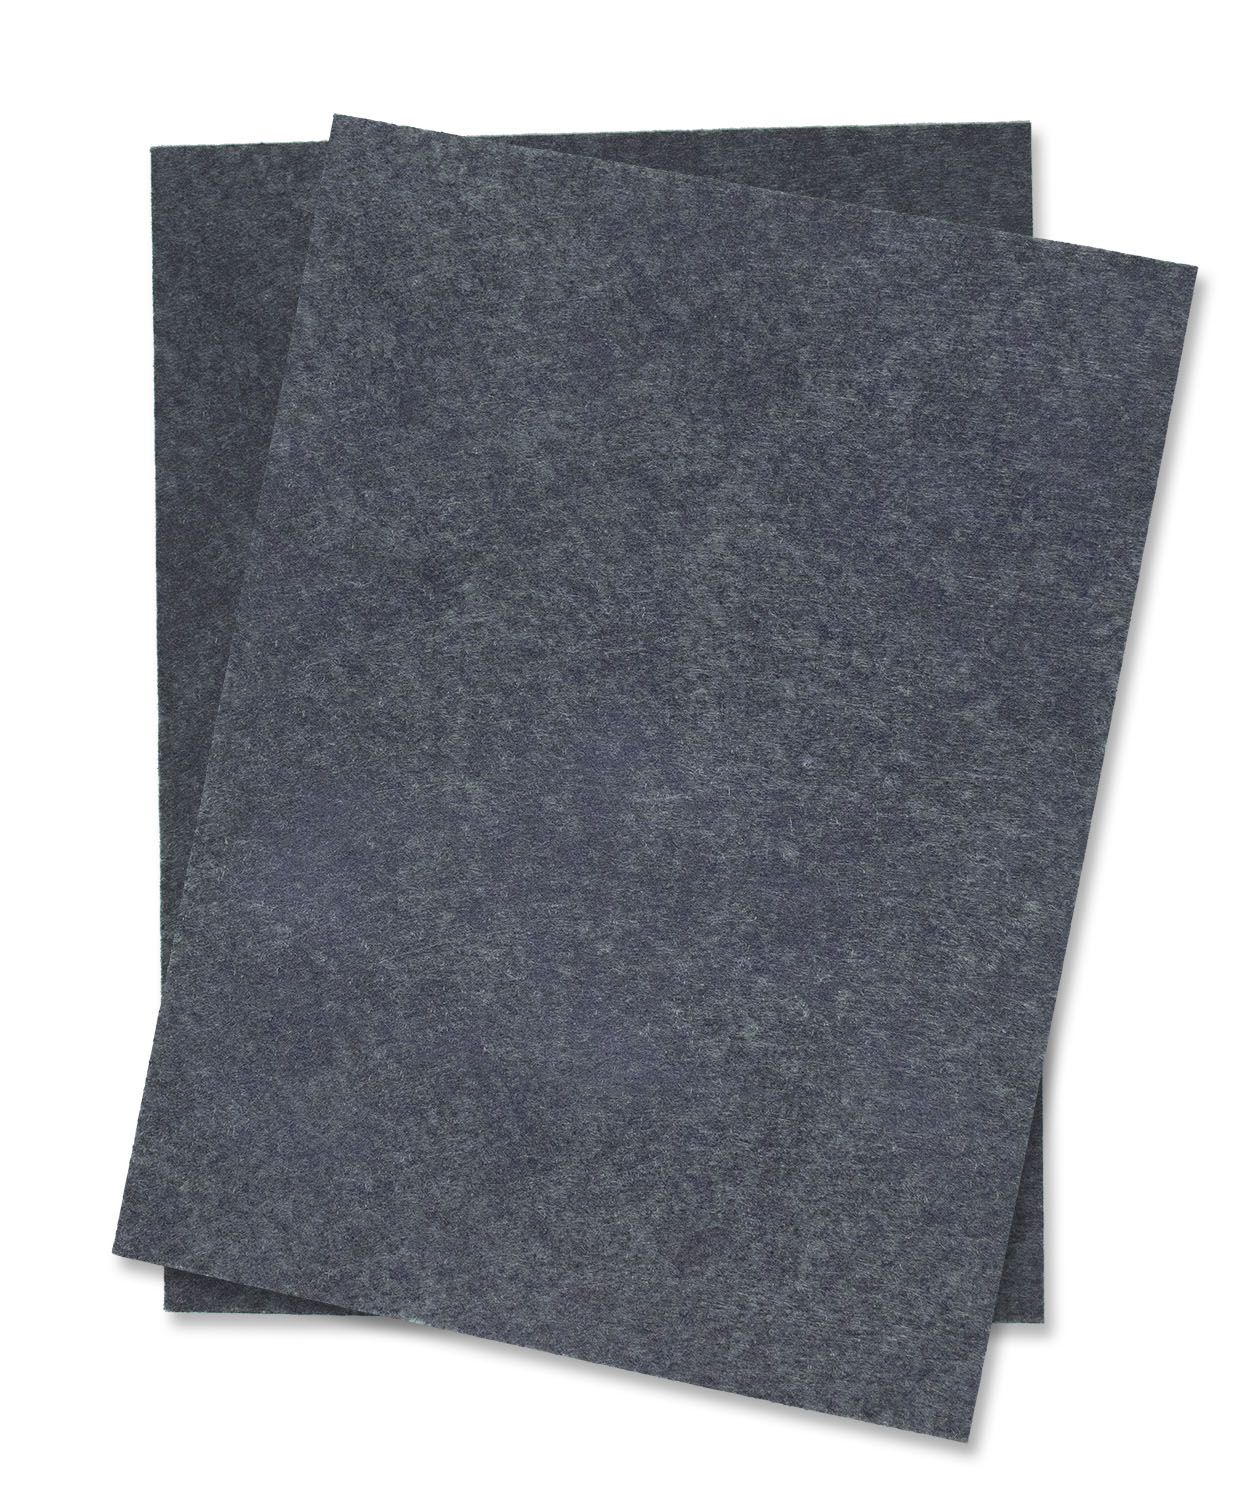 "Bead Backing Economy Foundation 6"" x 8"" Grey, Dark (2)"